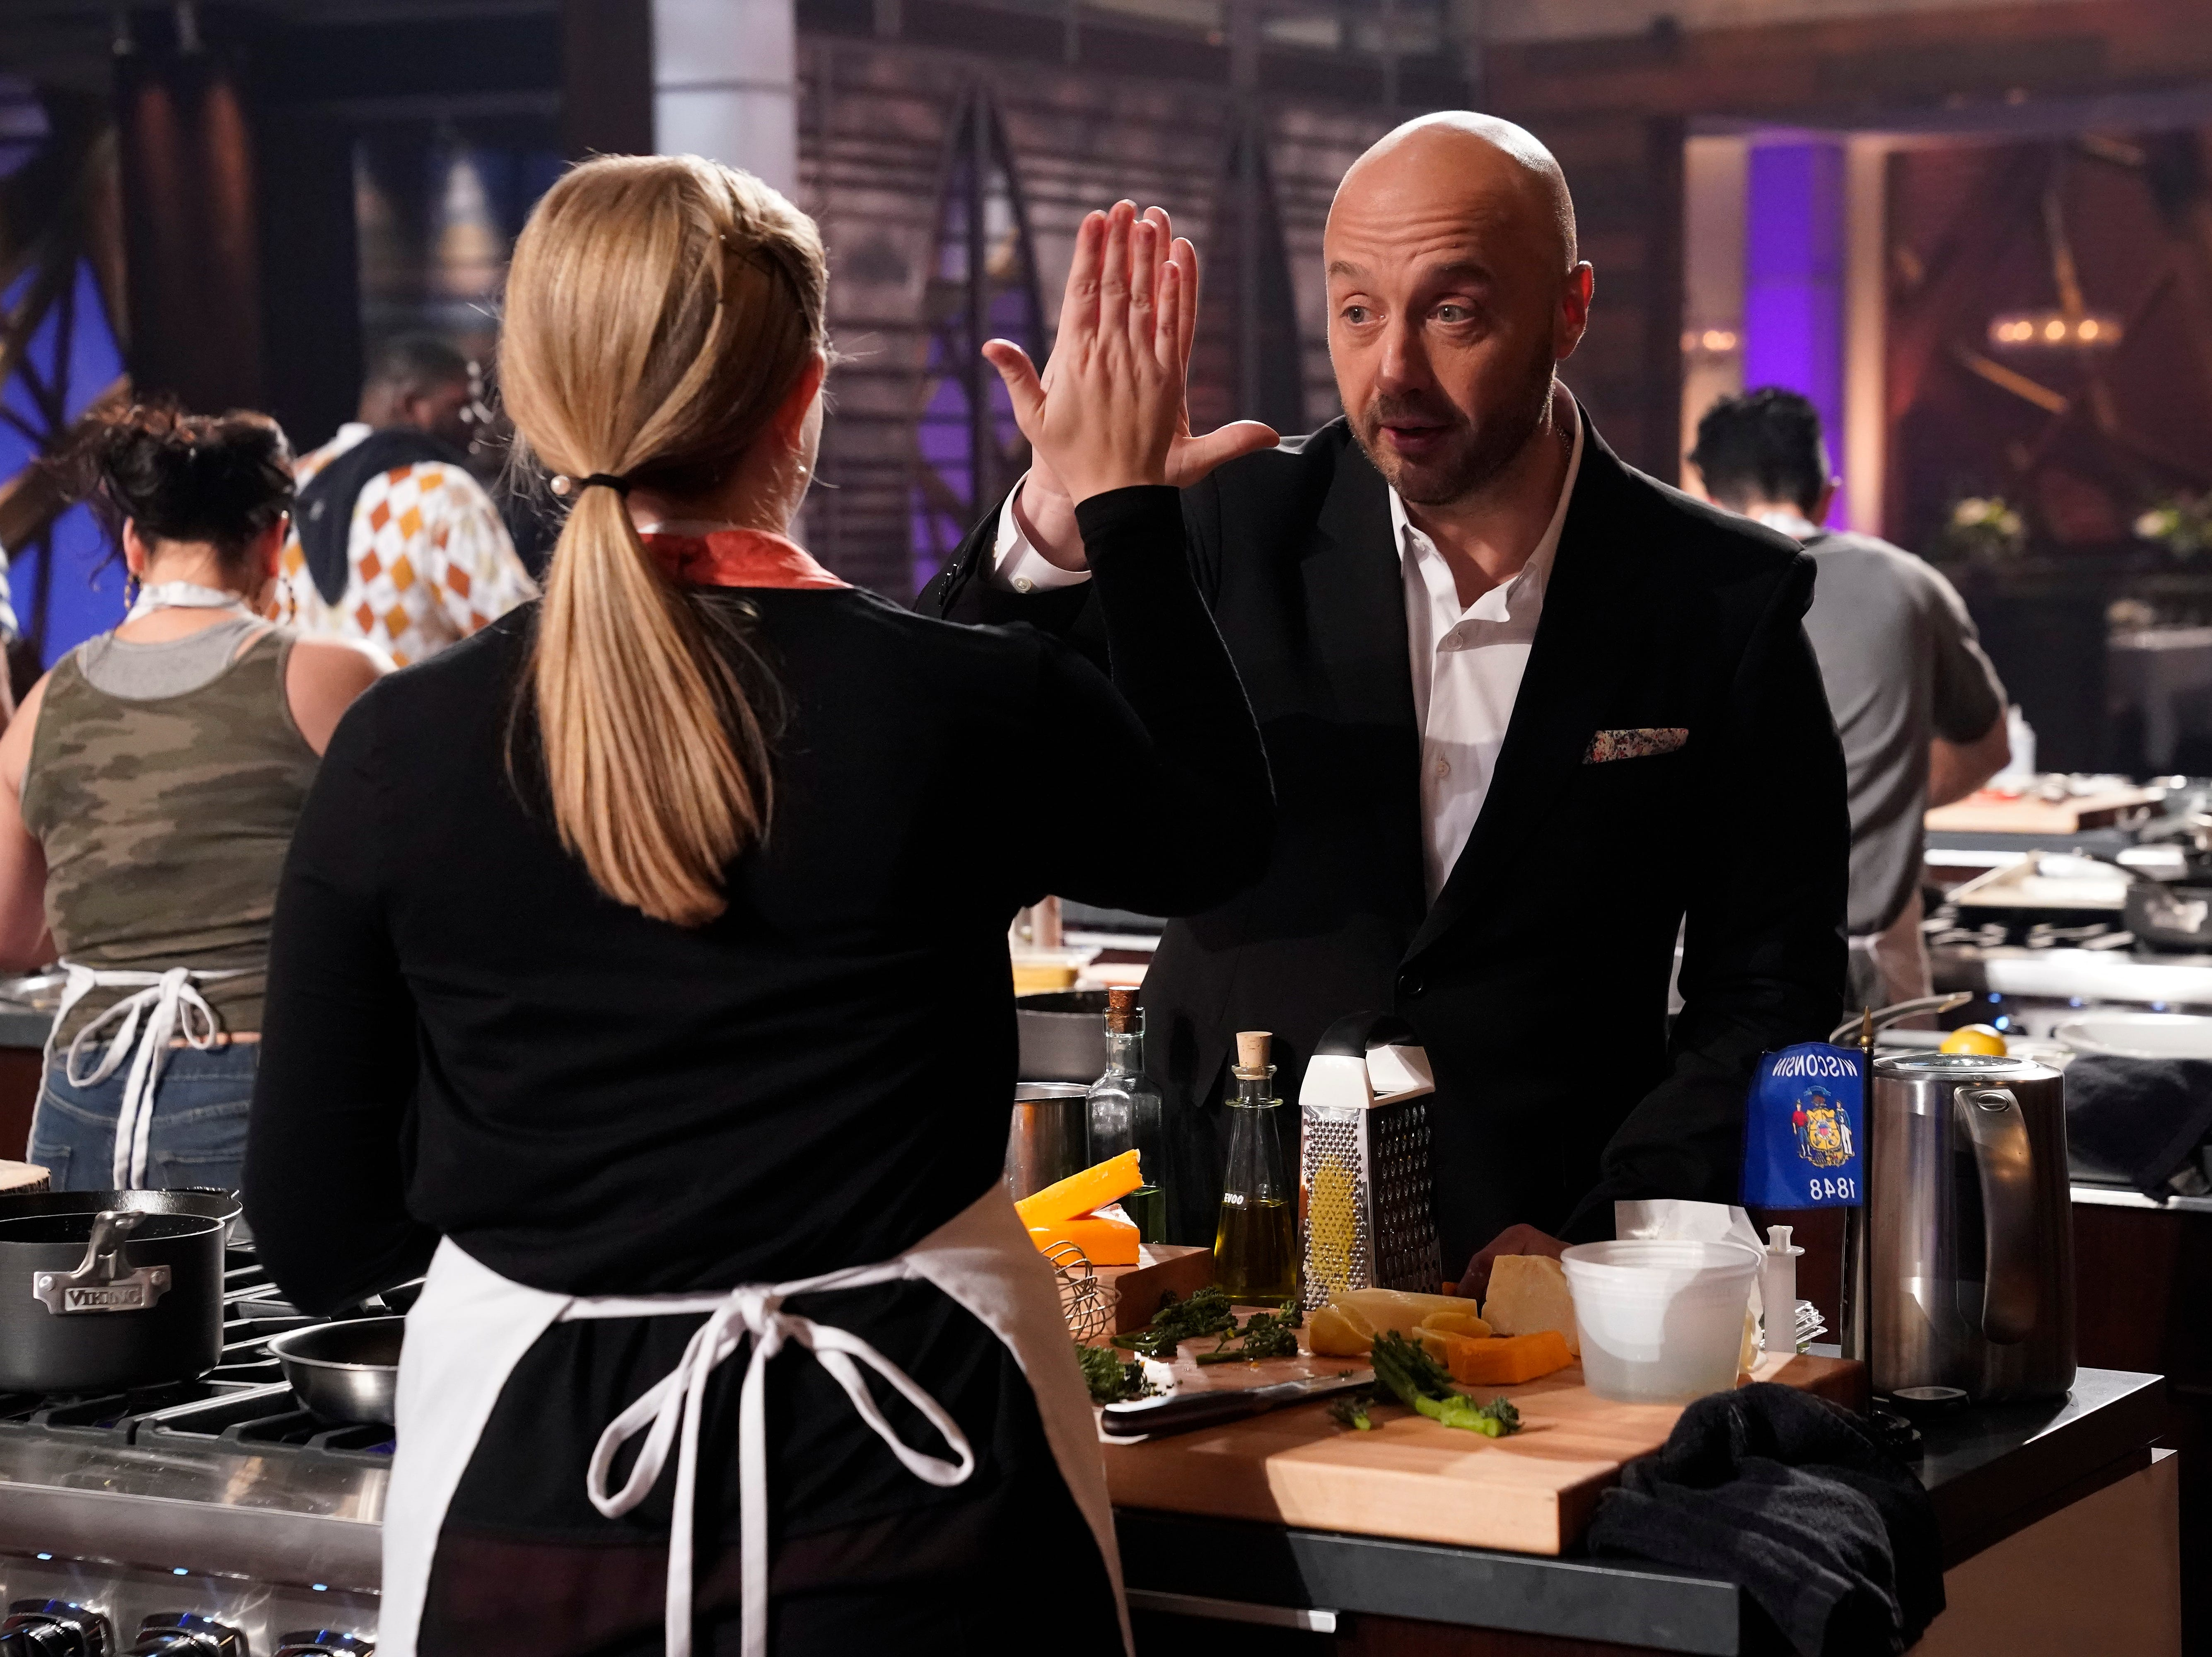 """MasterChef"" Judge Joe Bastianich gave Emily Hallock one of his aprons allowing her to compete on the show."